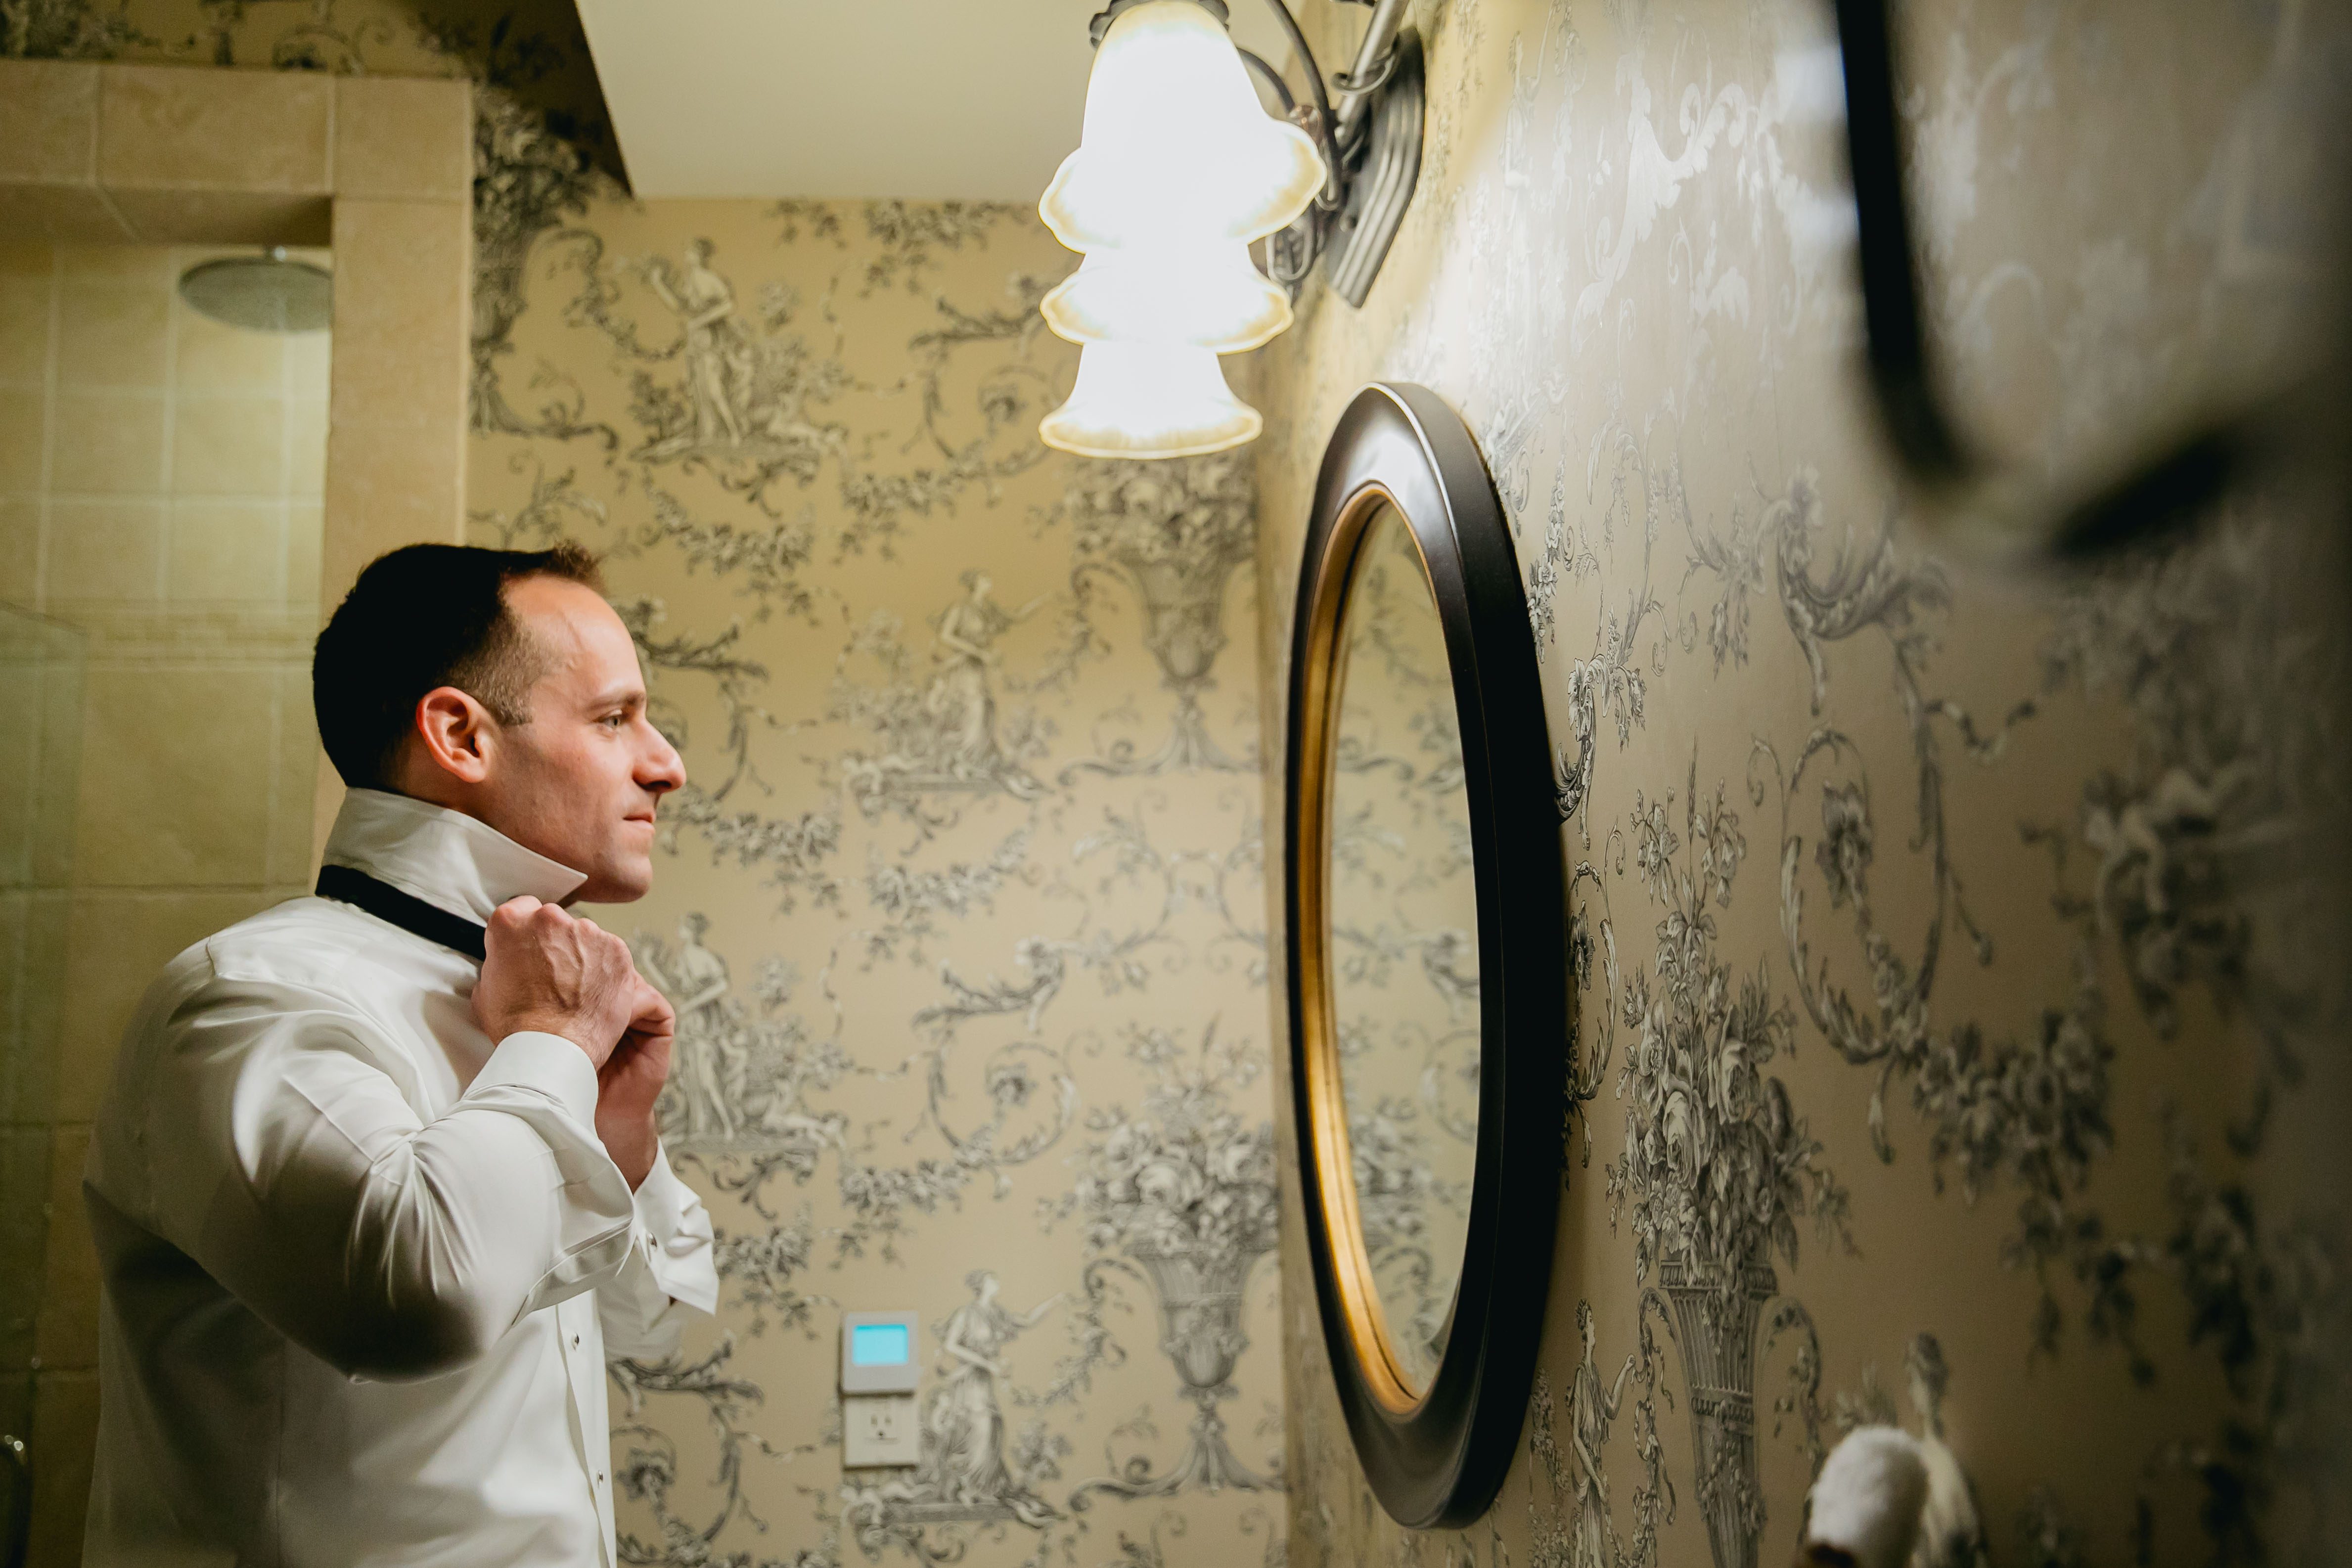 groom adjusting bow tie in mirror